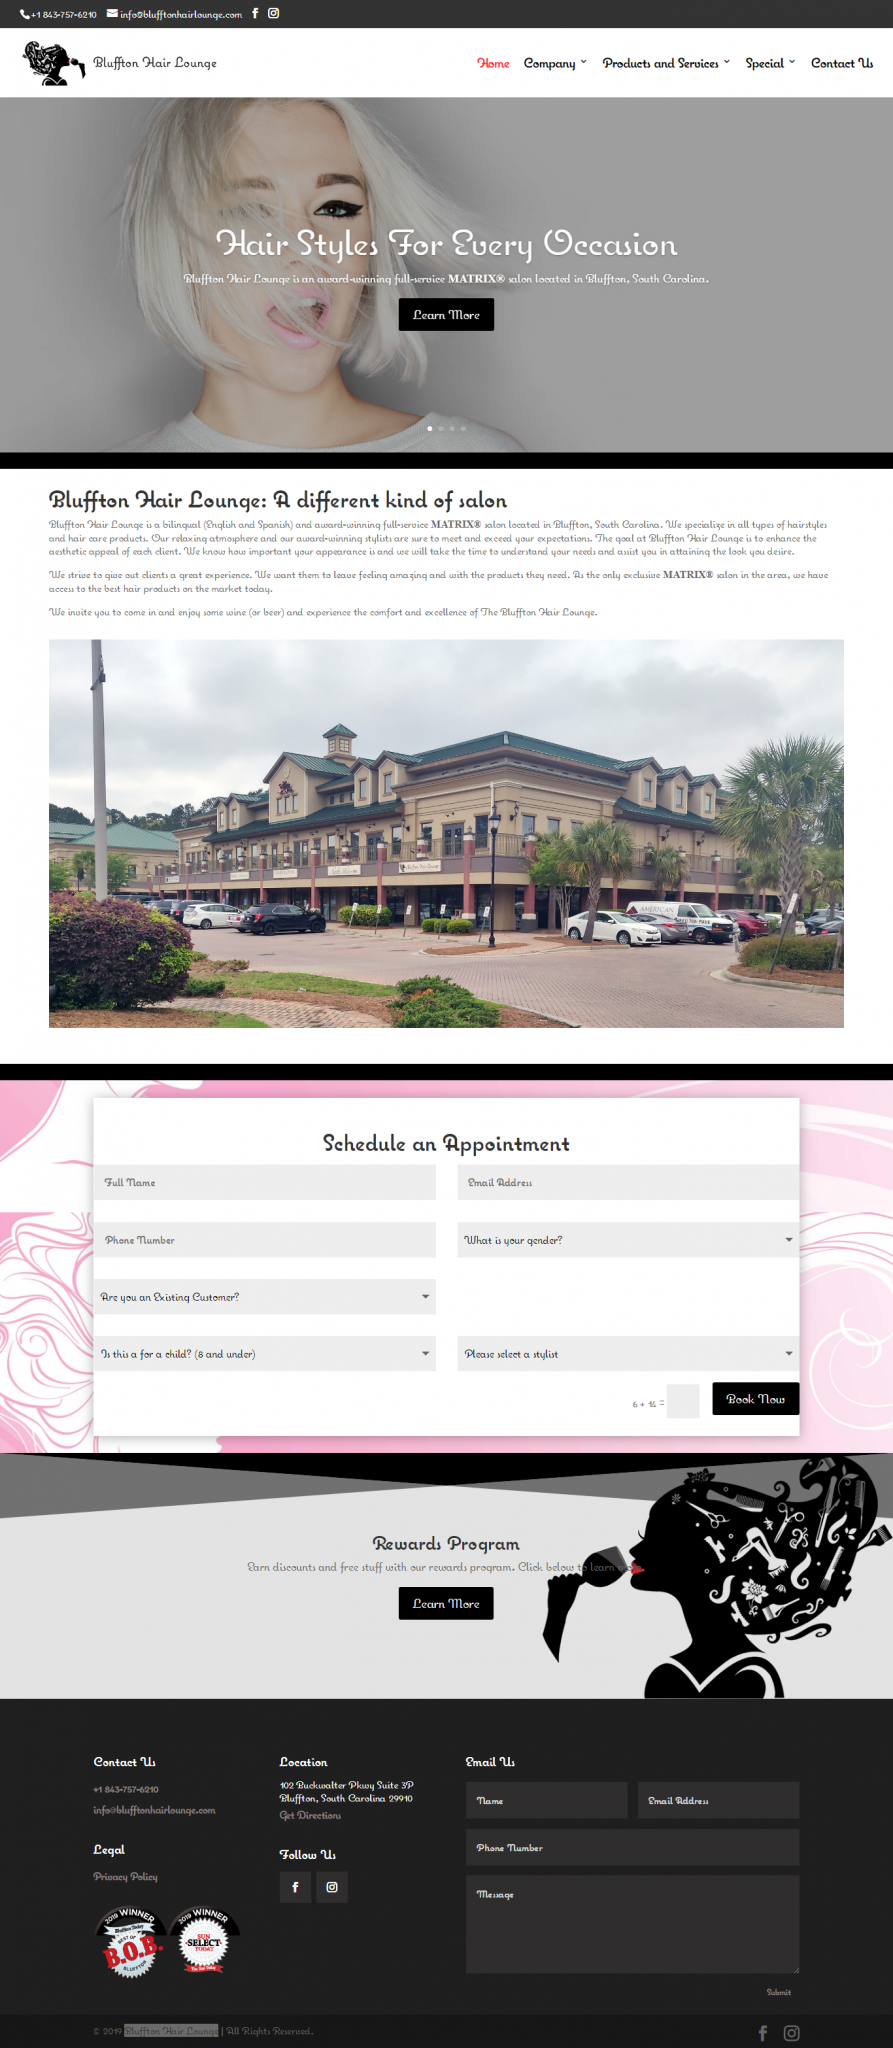 Bluffton Hair Lounge Website